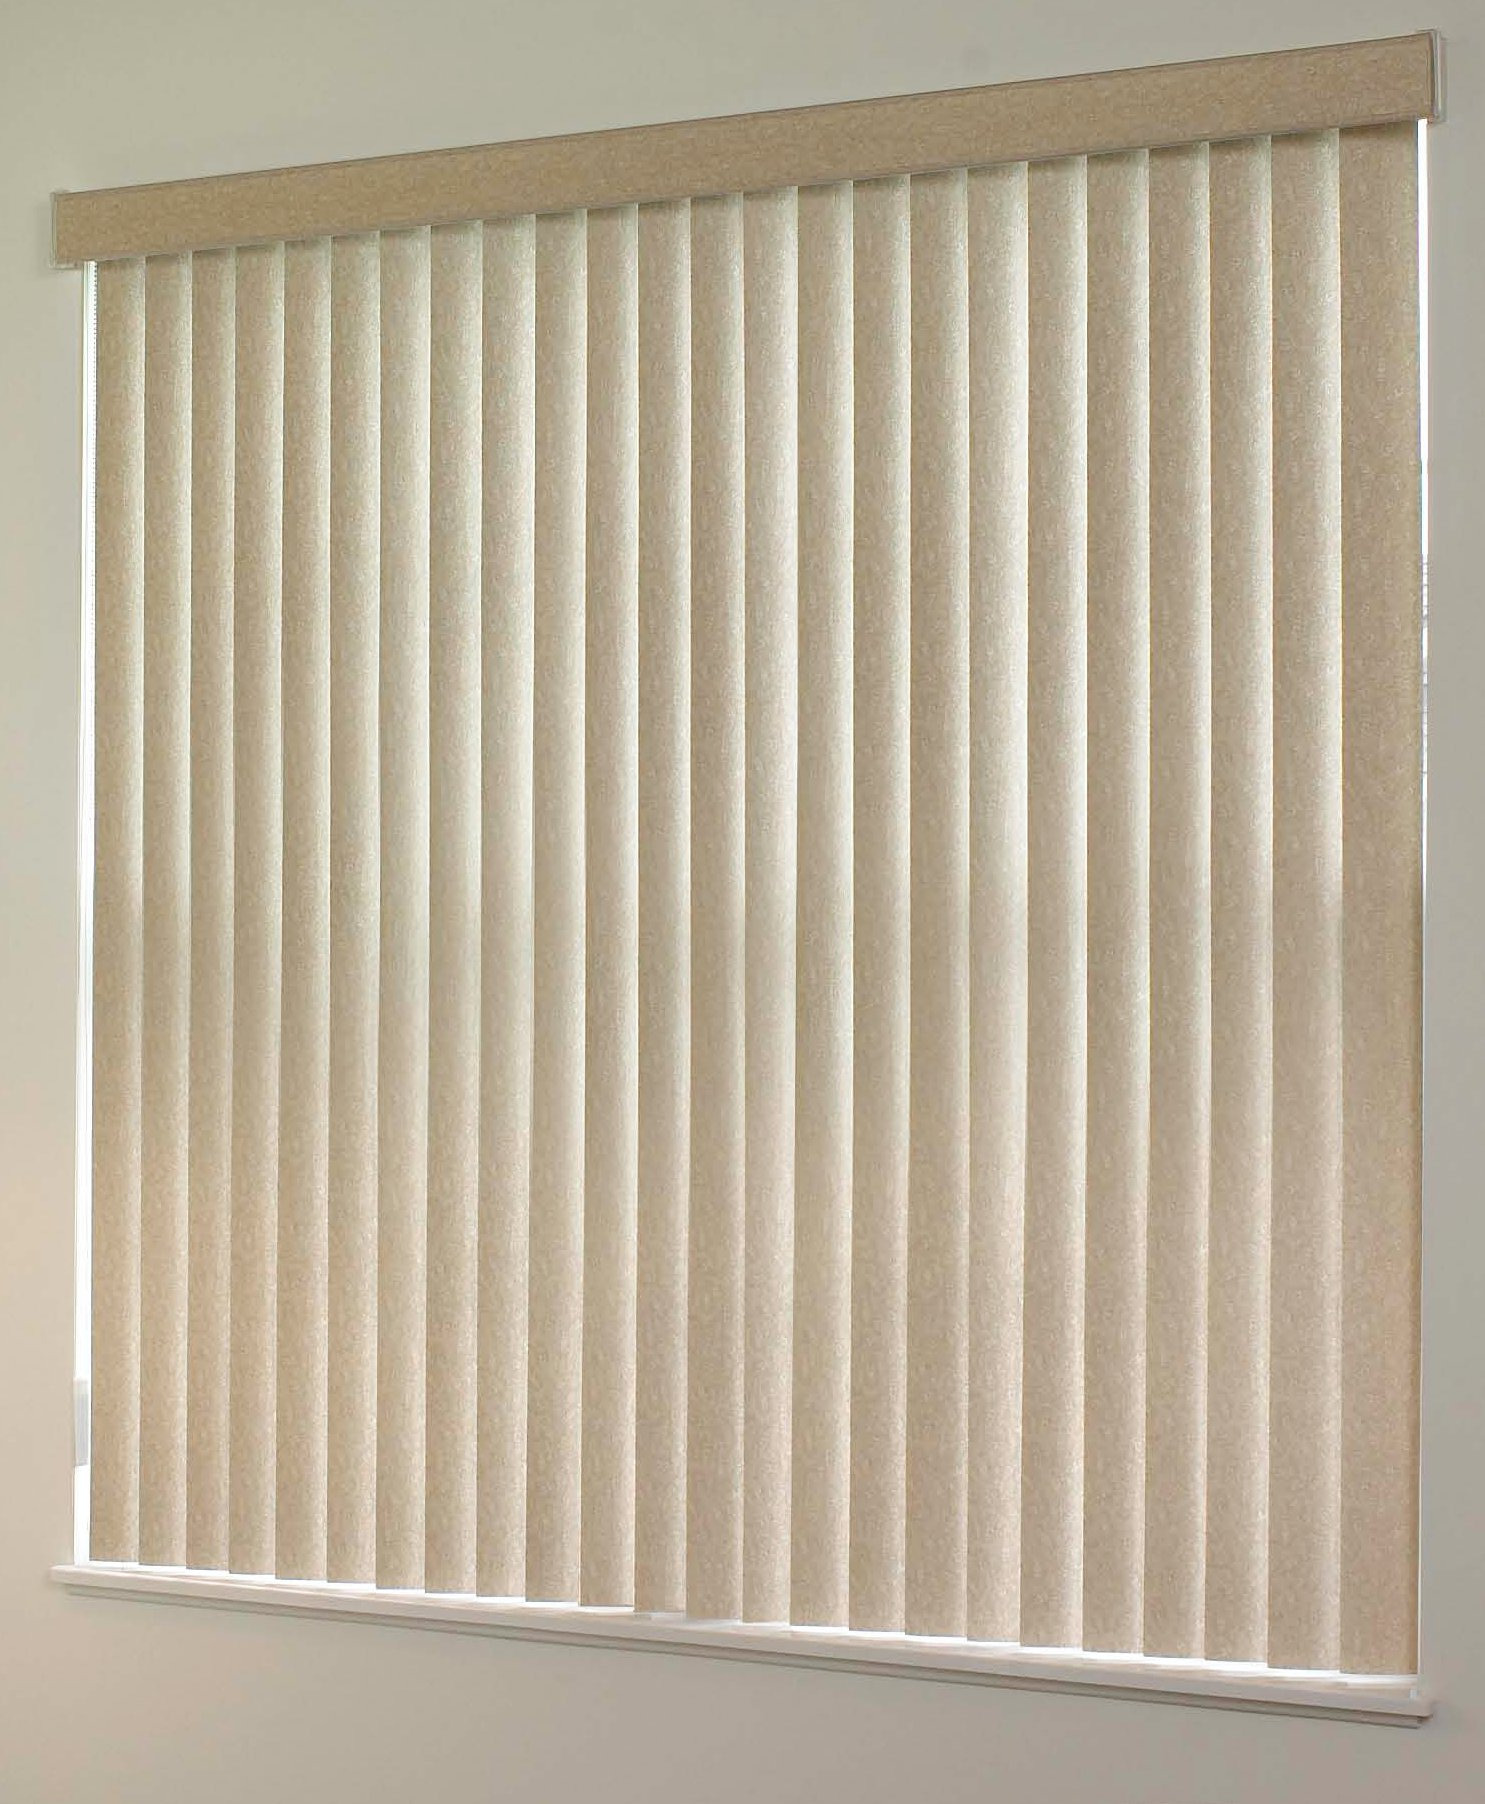 beige bali blinds lowes with bali 2 faux wood blinds and bali window solutions vinyl blinds plus bali blinds installation video also jcpenney bali blinds for interior home decor ideas